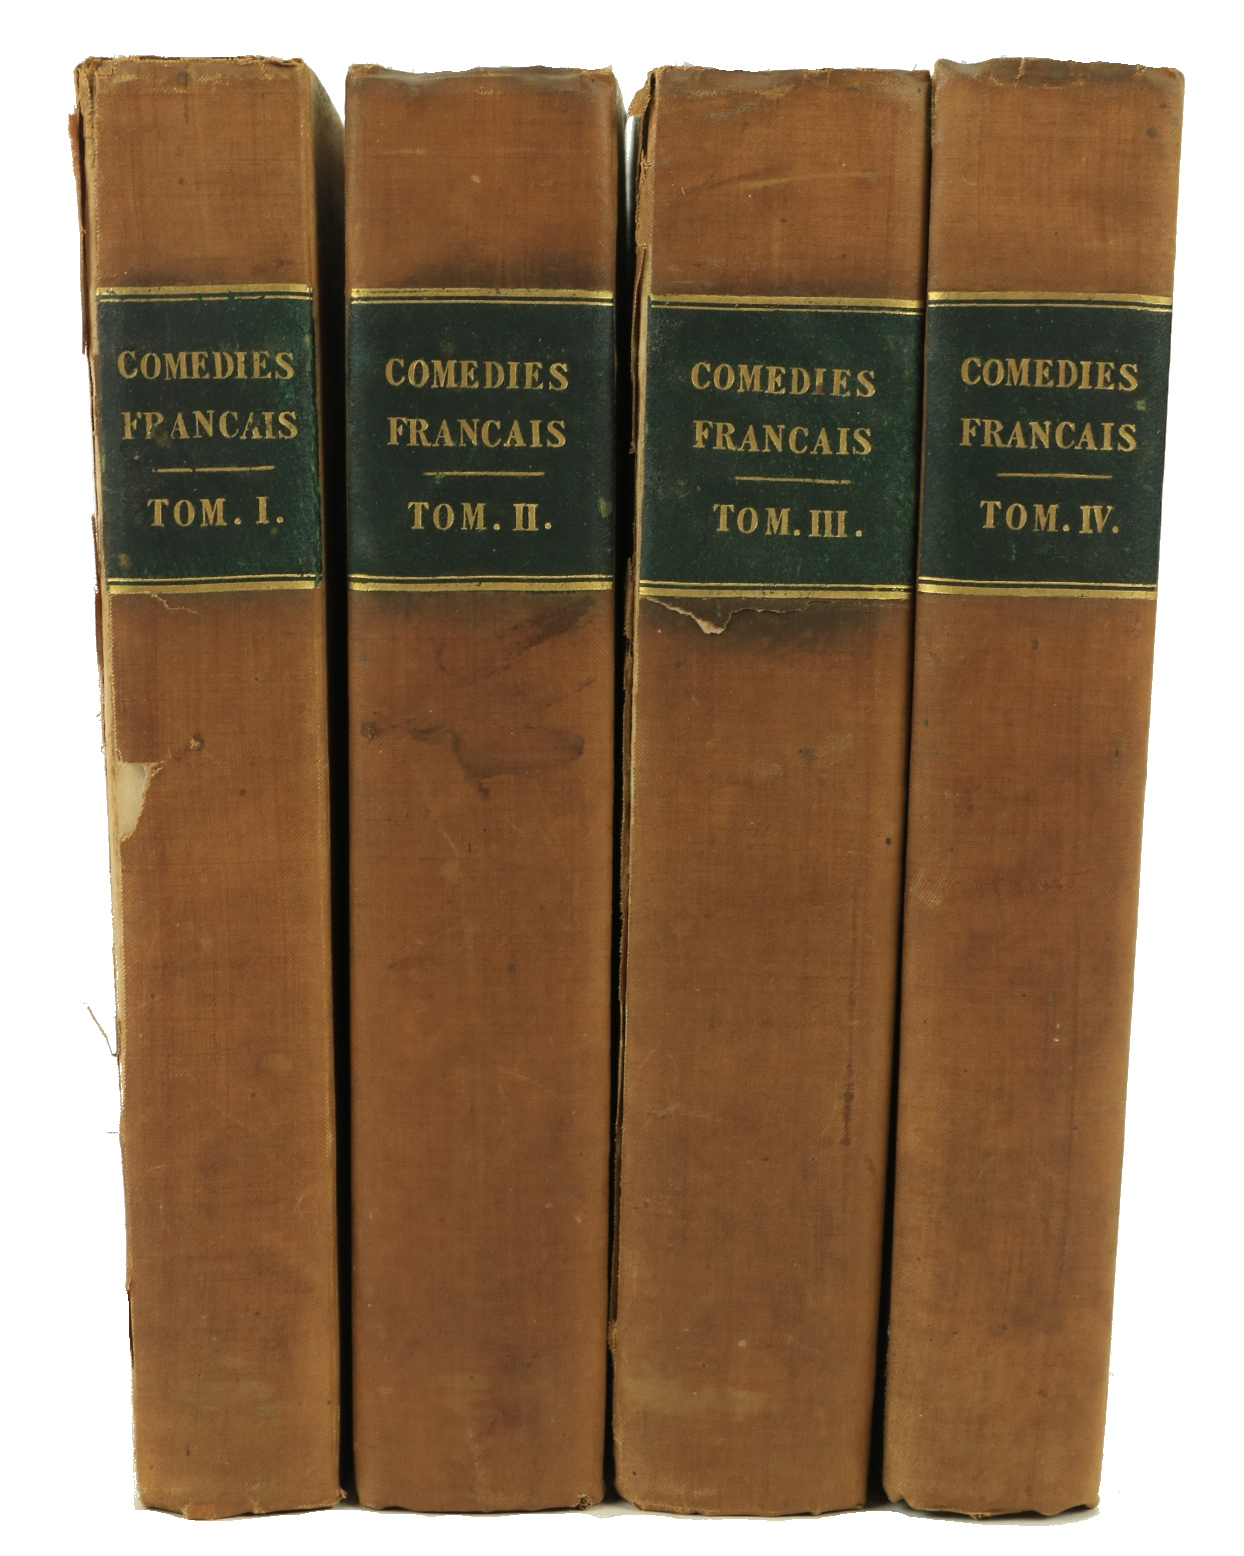 Early 19th Century Plays & Operasÿ French Literature:ÿÿComedies Francais, An important collection of